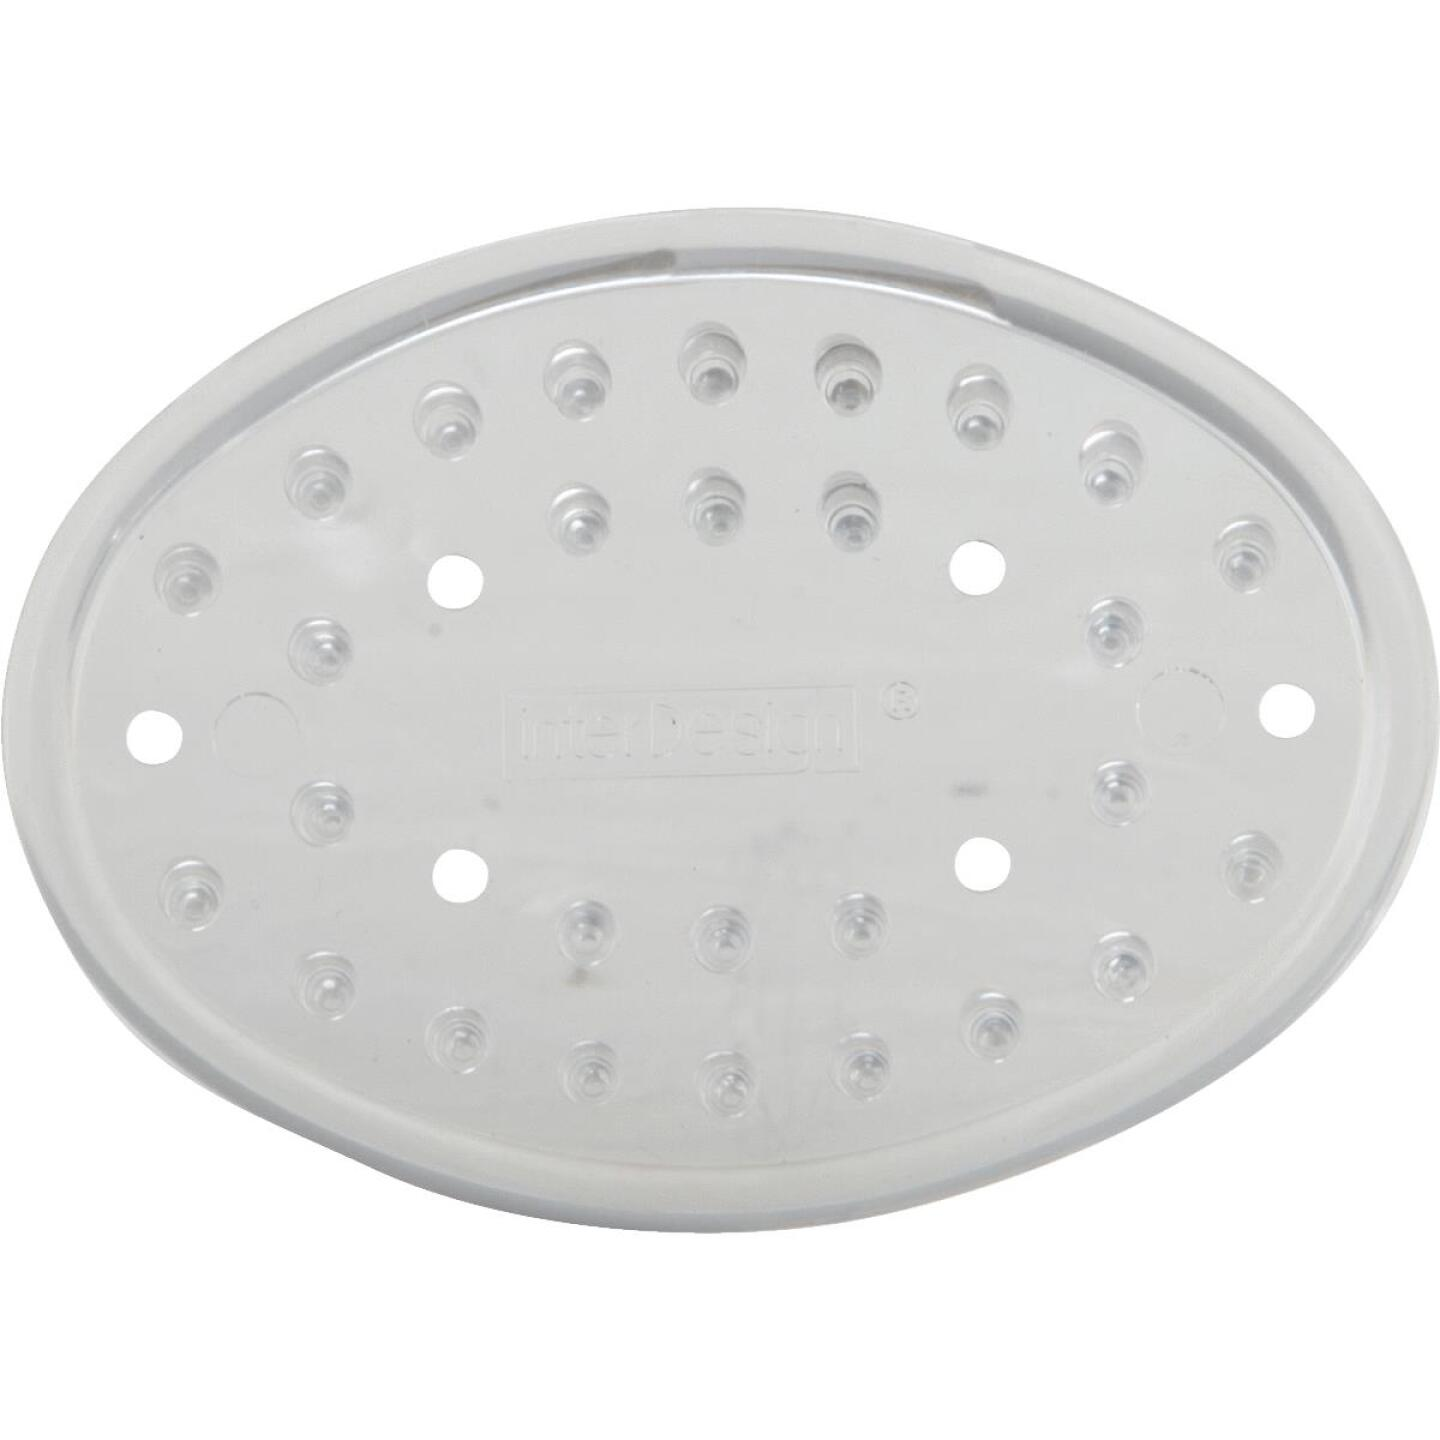 InterDesign Clear Soap Dish (2-Count) Image 1